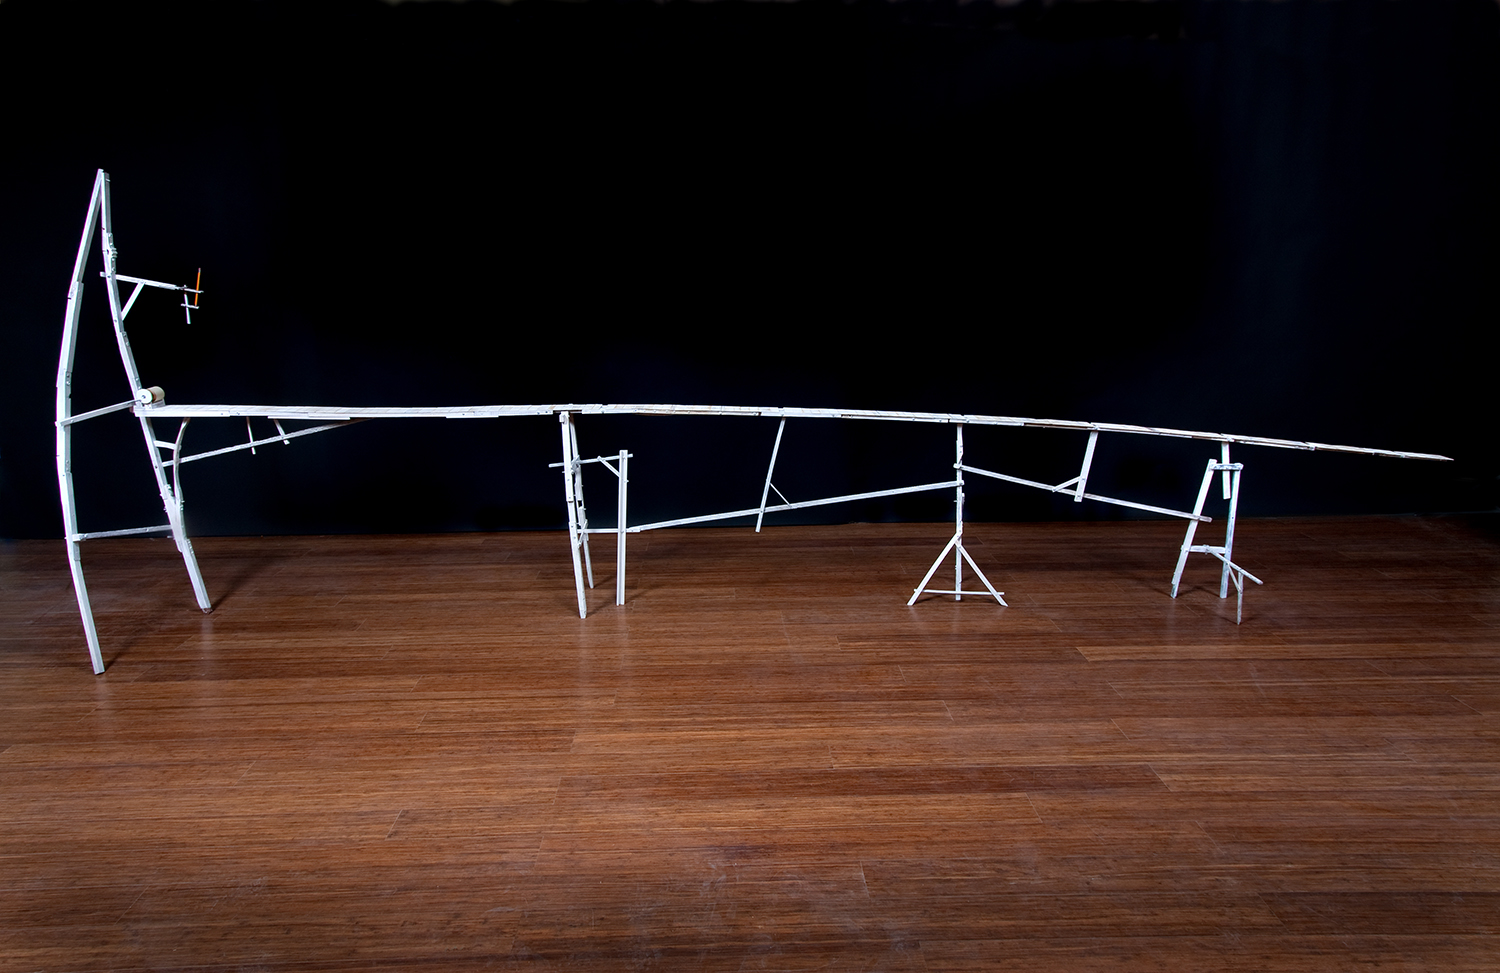 The World's Longest Drawing Table, 2008 (unfurled)